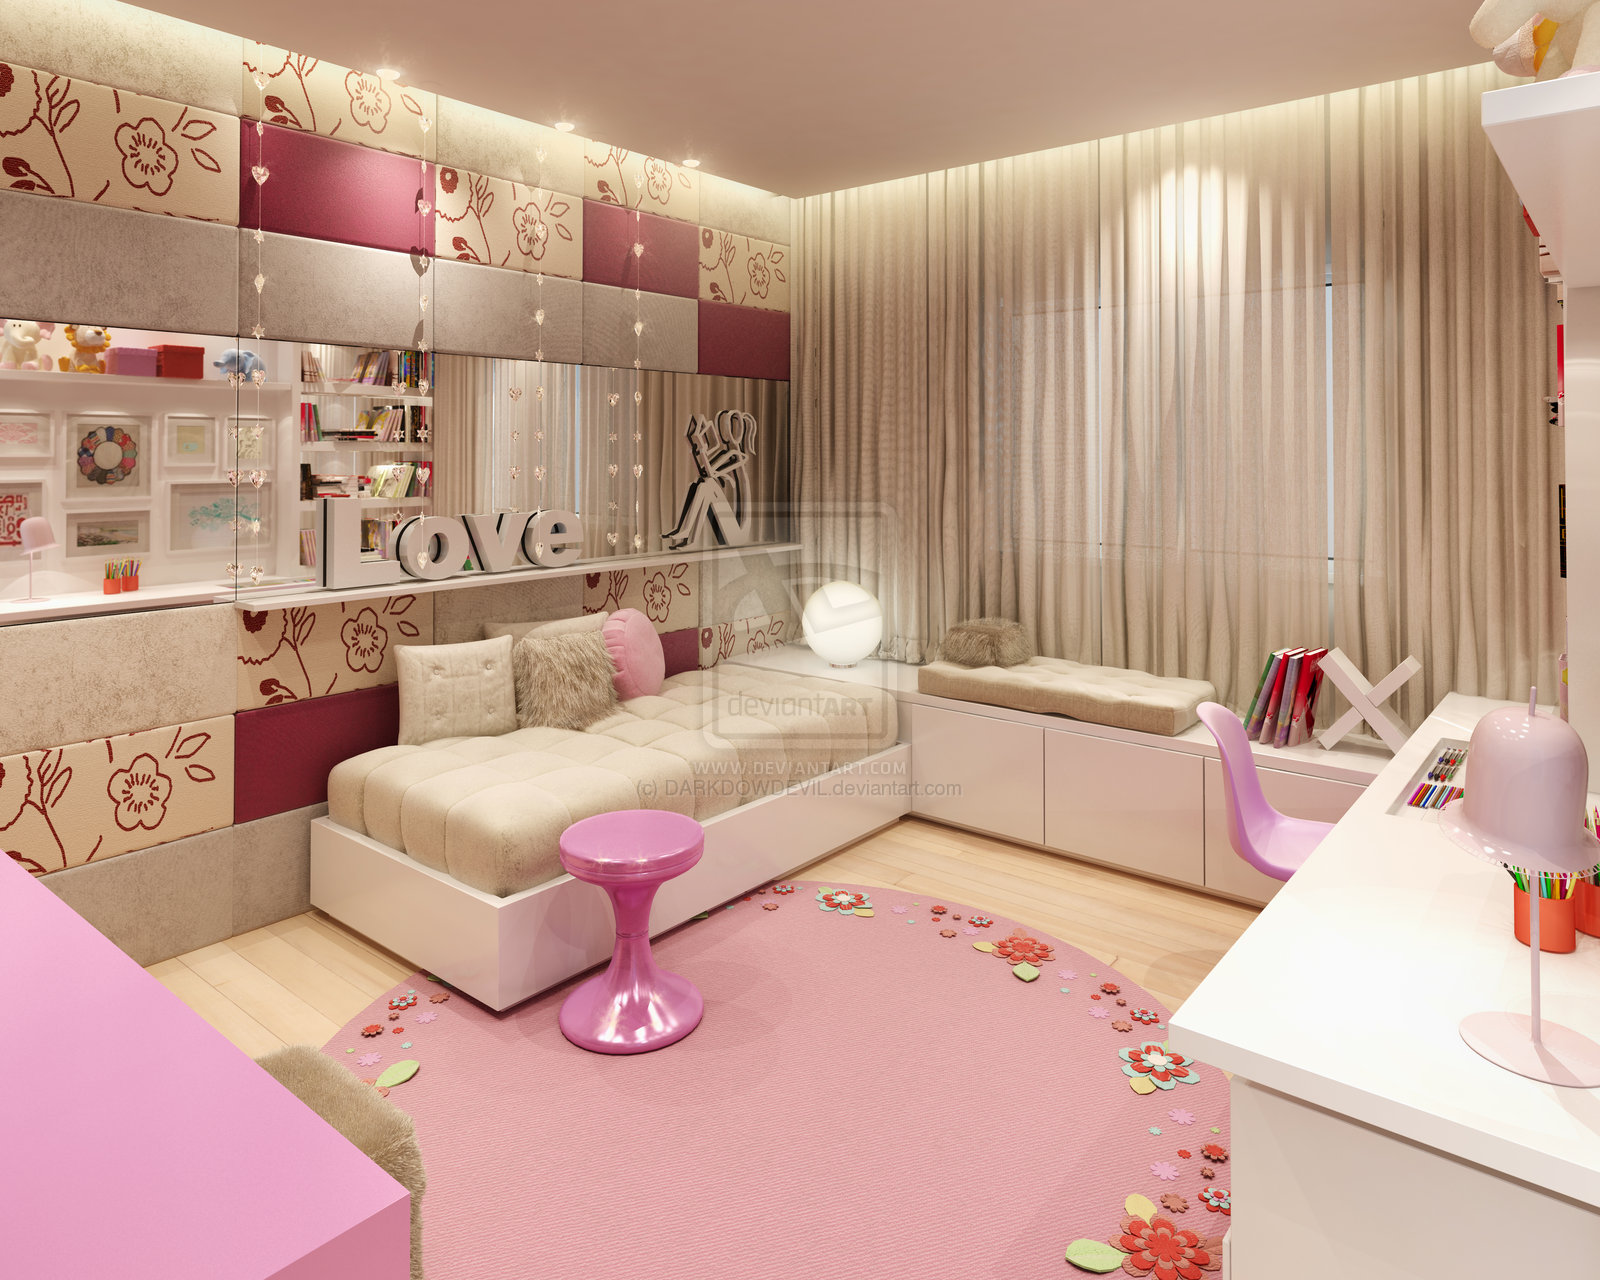 Teenage room designs - Bed for girls room ...